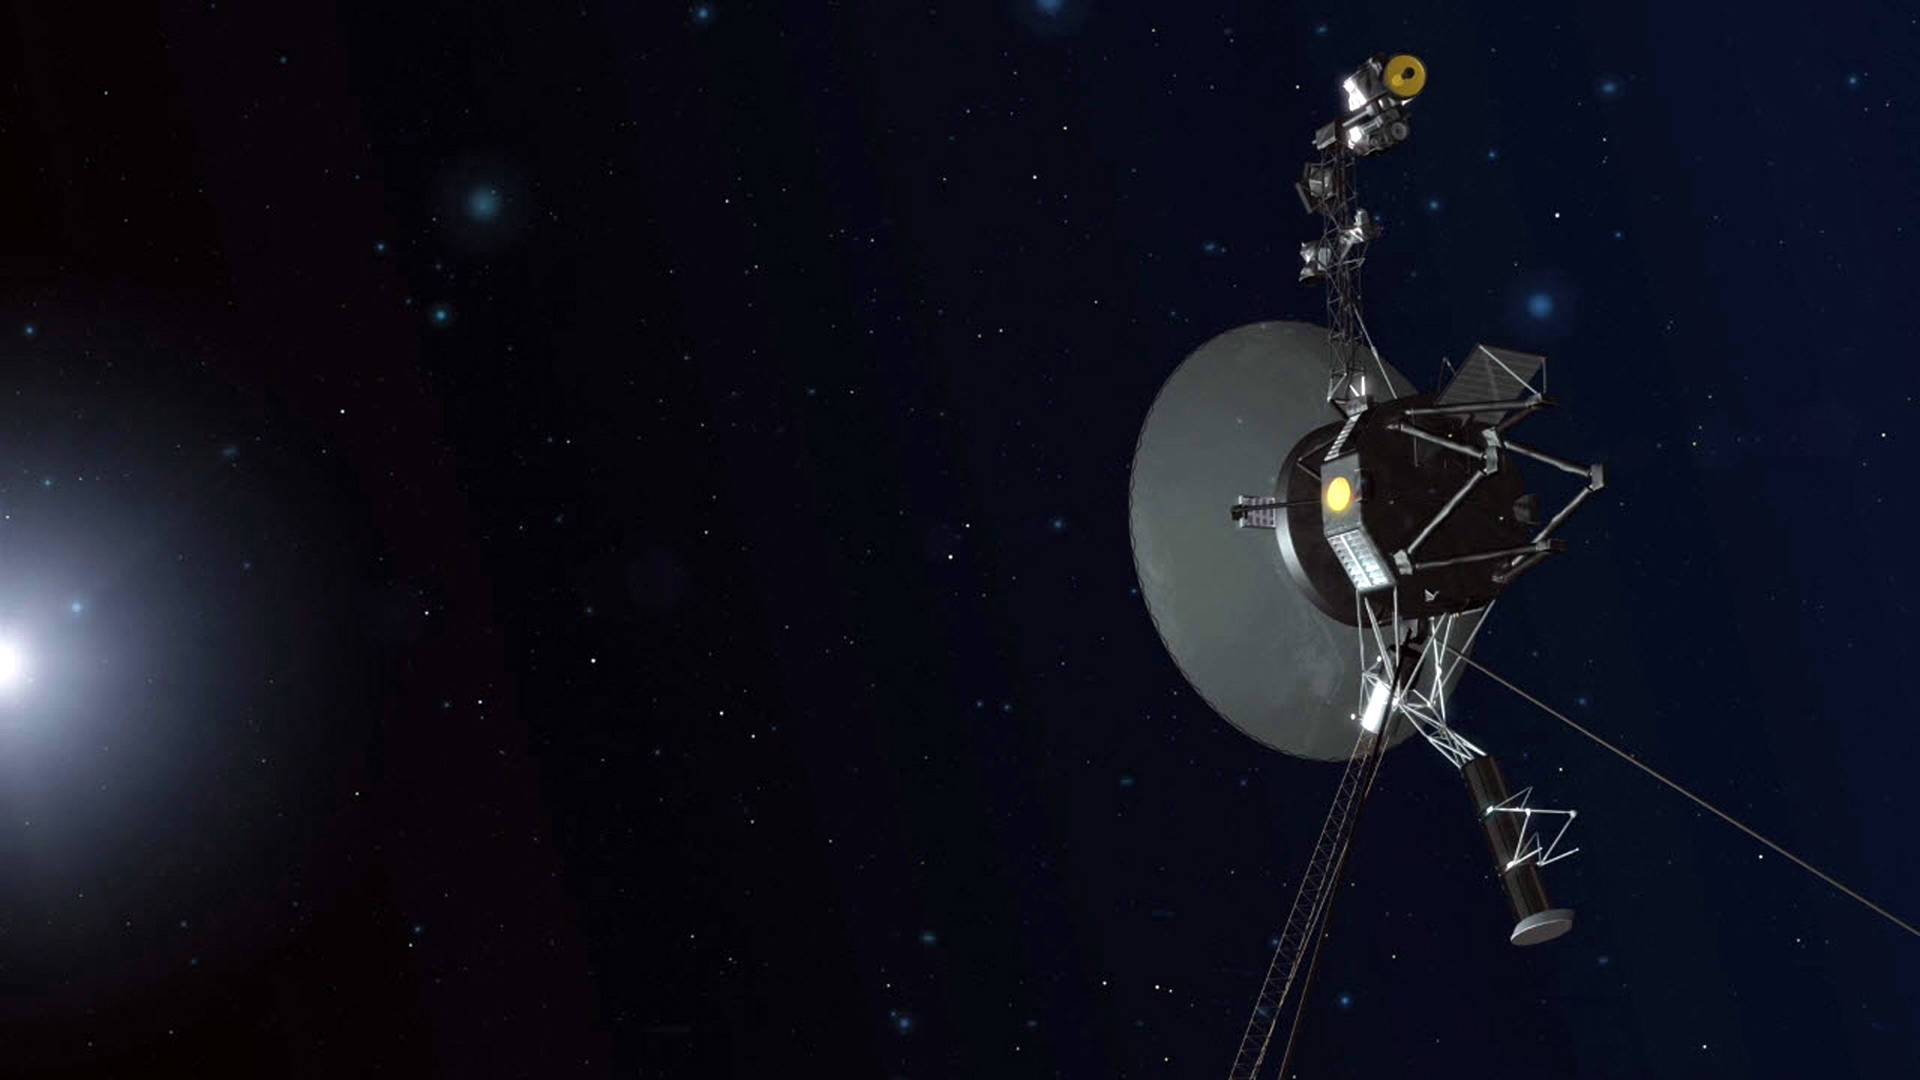 Artist illustration of Voyager 1 in deep space, far from the sun and planets of the solar system.  NASA